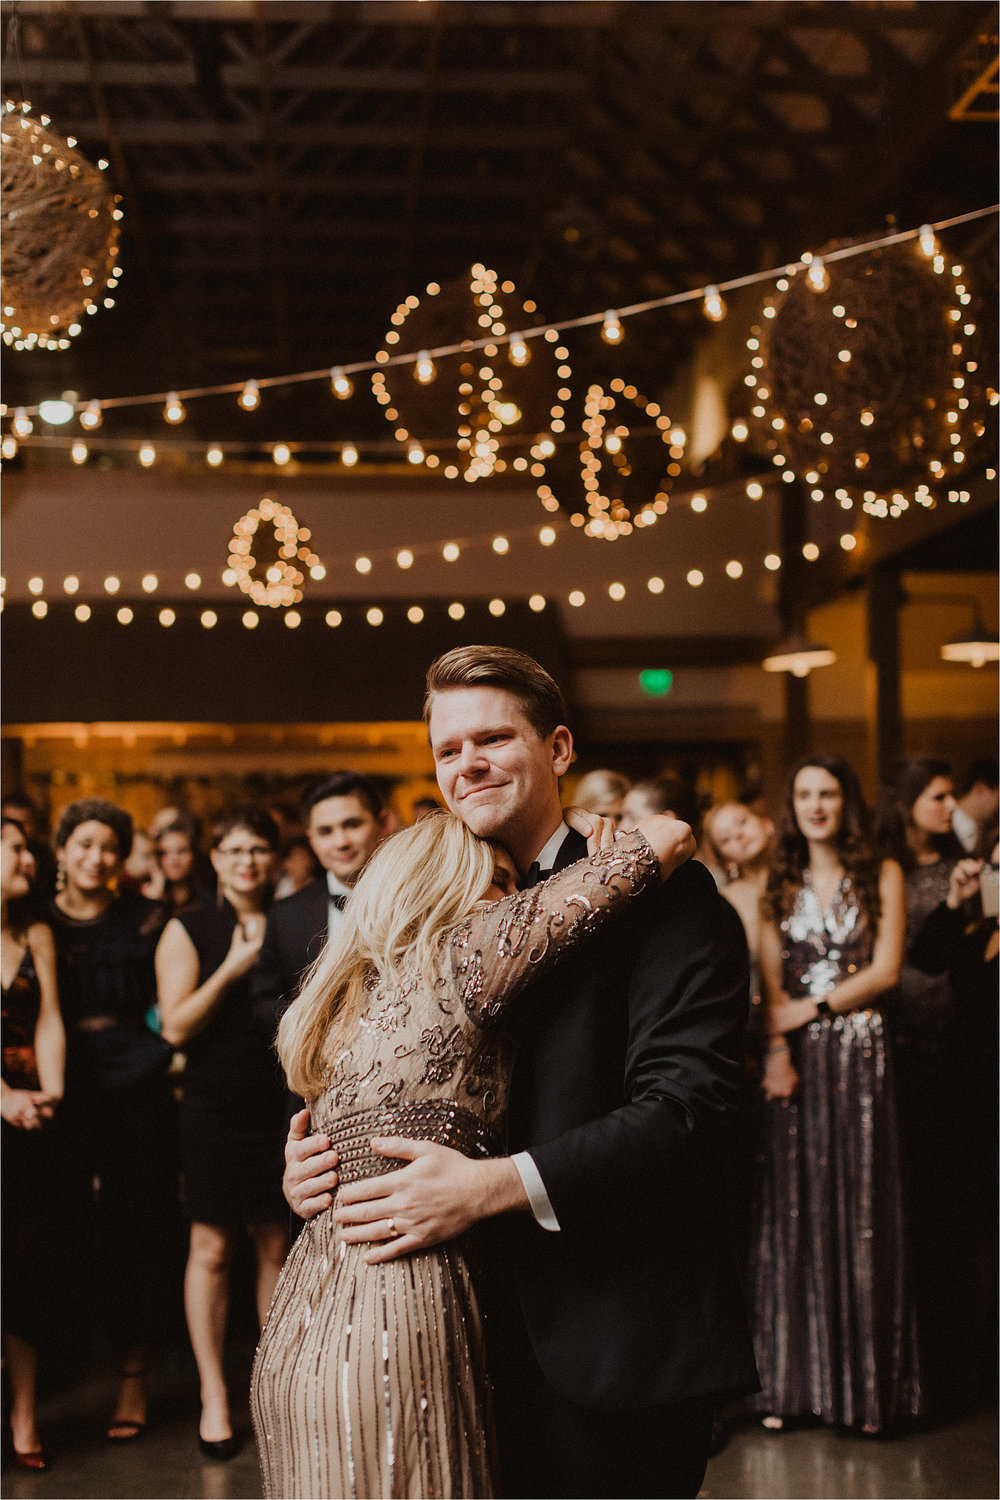 NashvilleWedding_NewYearsEveWedding_NYE_NashvilleWeddingPhotographer_LovelessWedding_Tennessee_MollyPeachPhotography-102.jpg